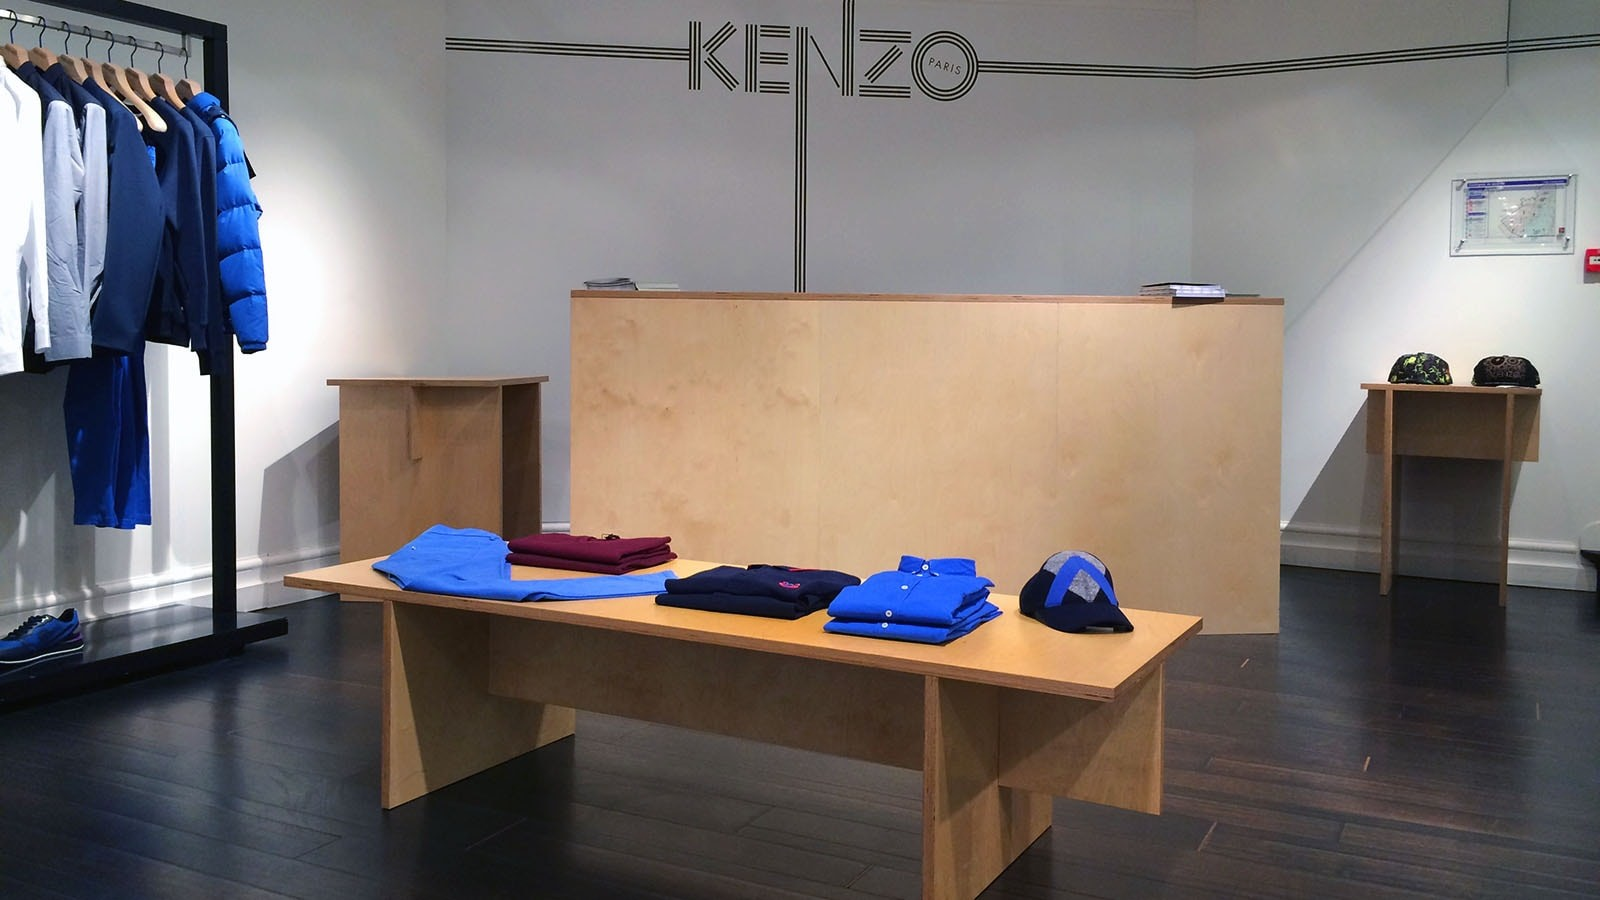 Boutique Kenzo Georges V Paris Efi Design (2)